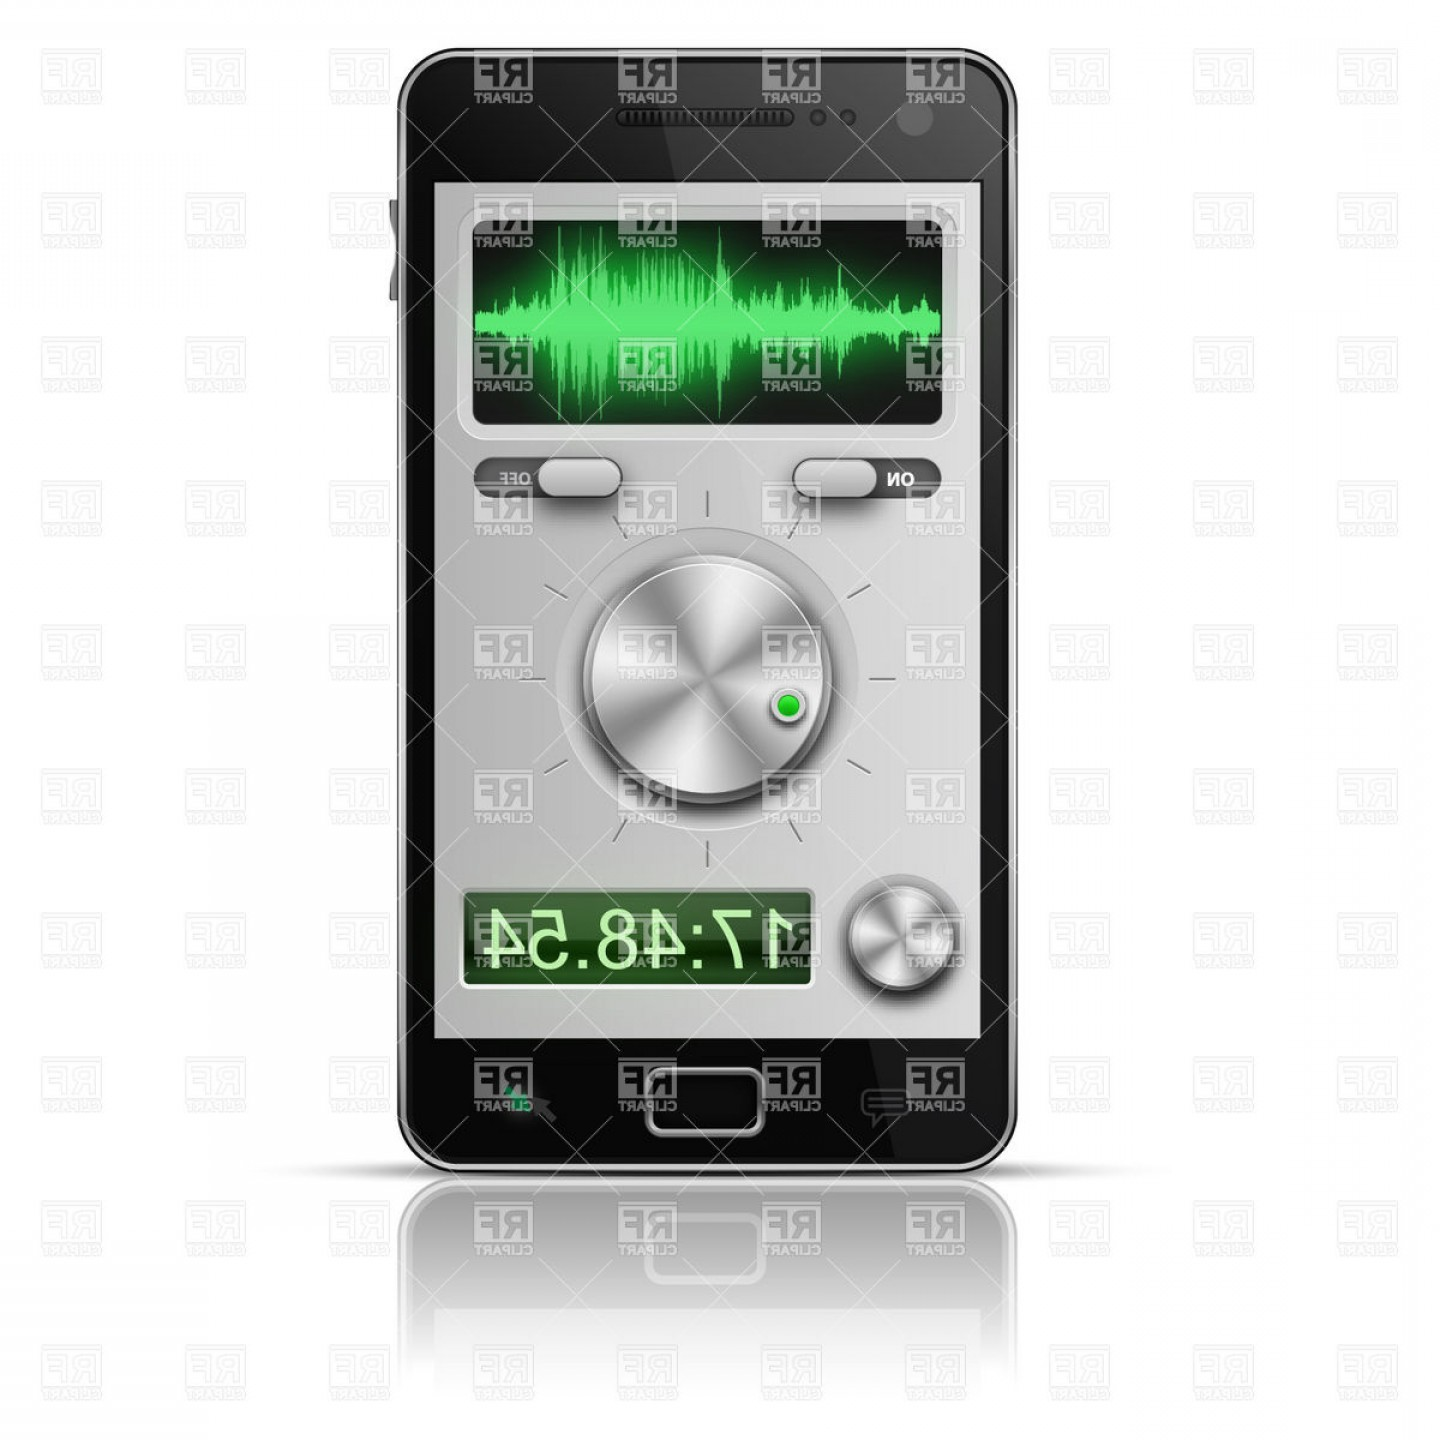 Free Vector File Software: Ui Elements For Smartphone Audio Software Vector Clipart